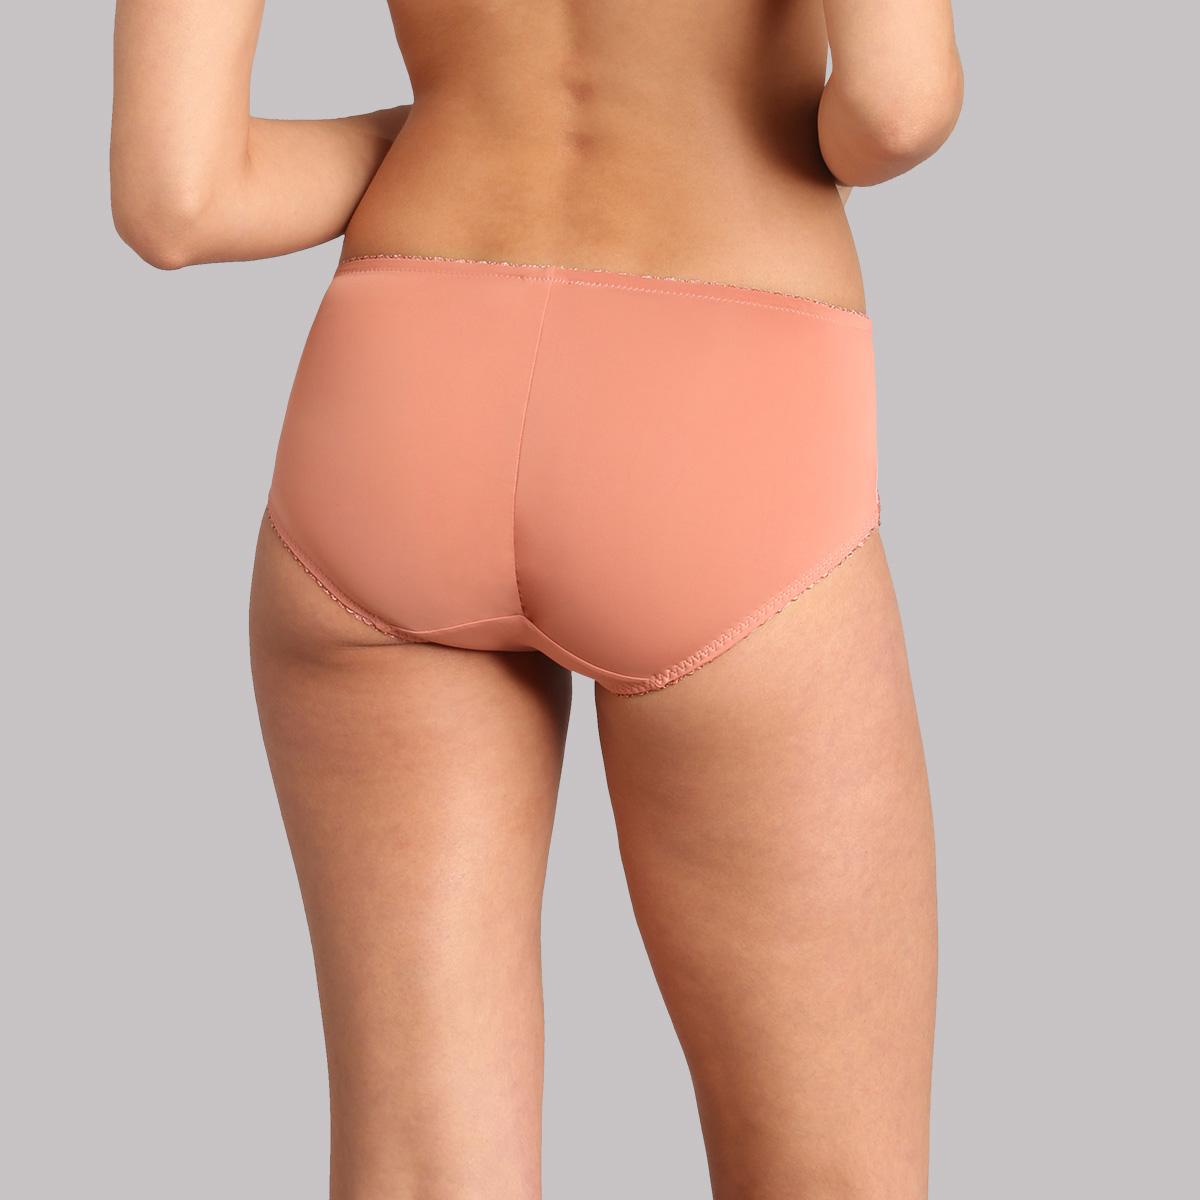 Midi knickers in terracotta - Classic Lace Support, , PLAYTEX